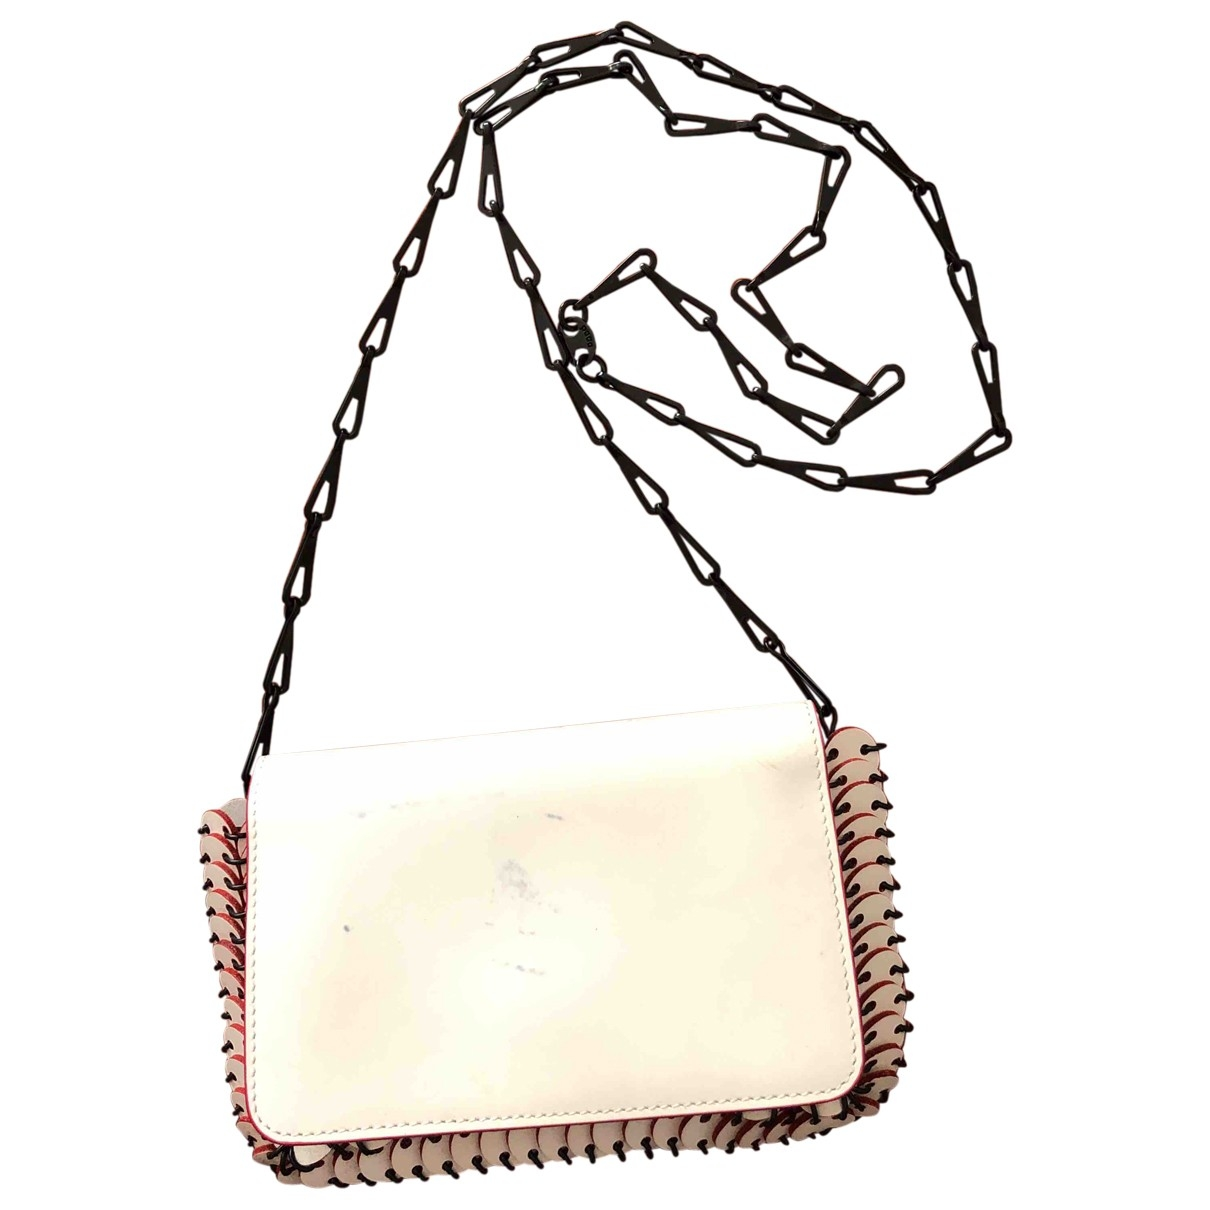 Paco Rabanne \N Ecru Leather handbag for Women \N